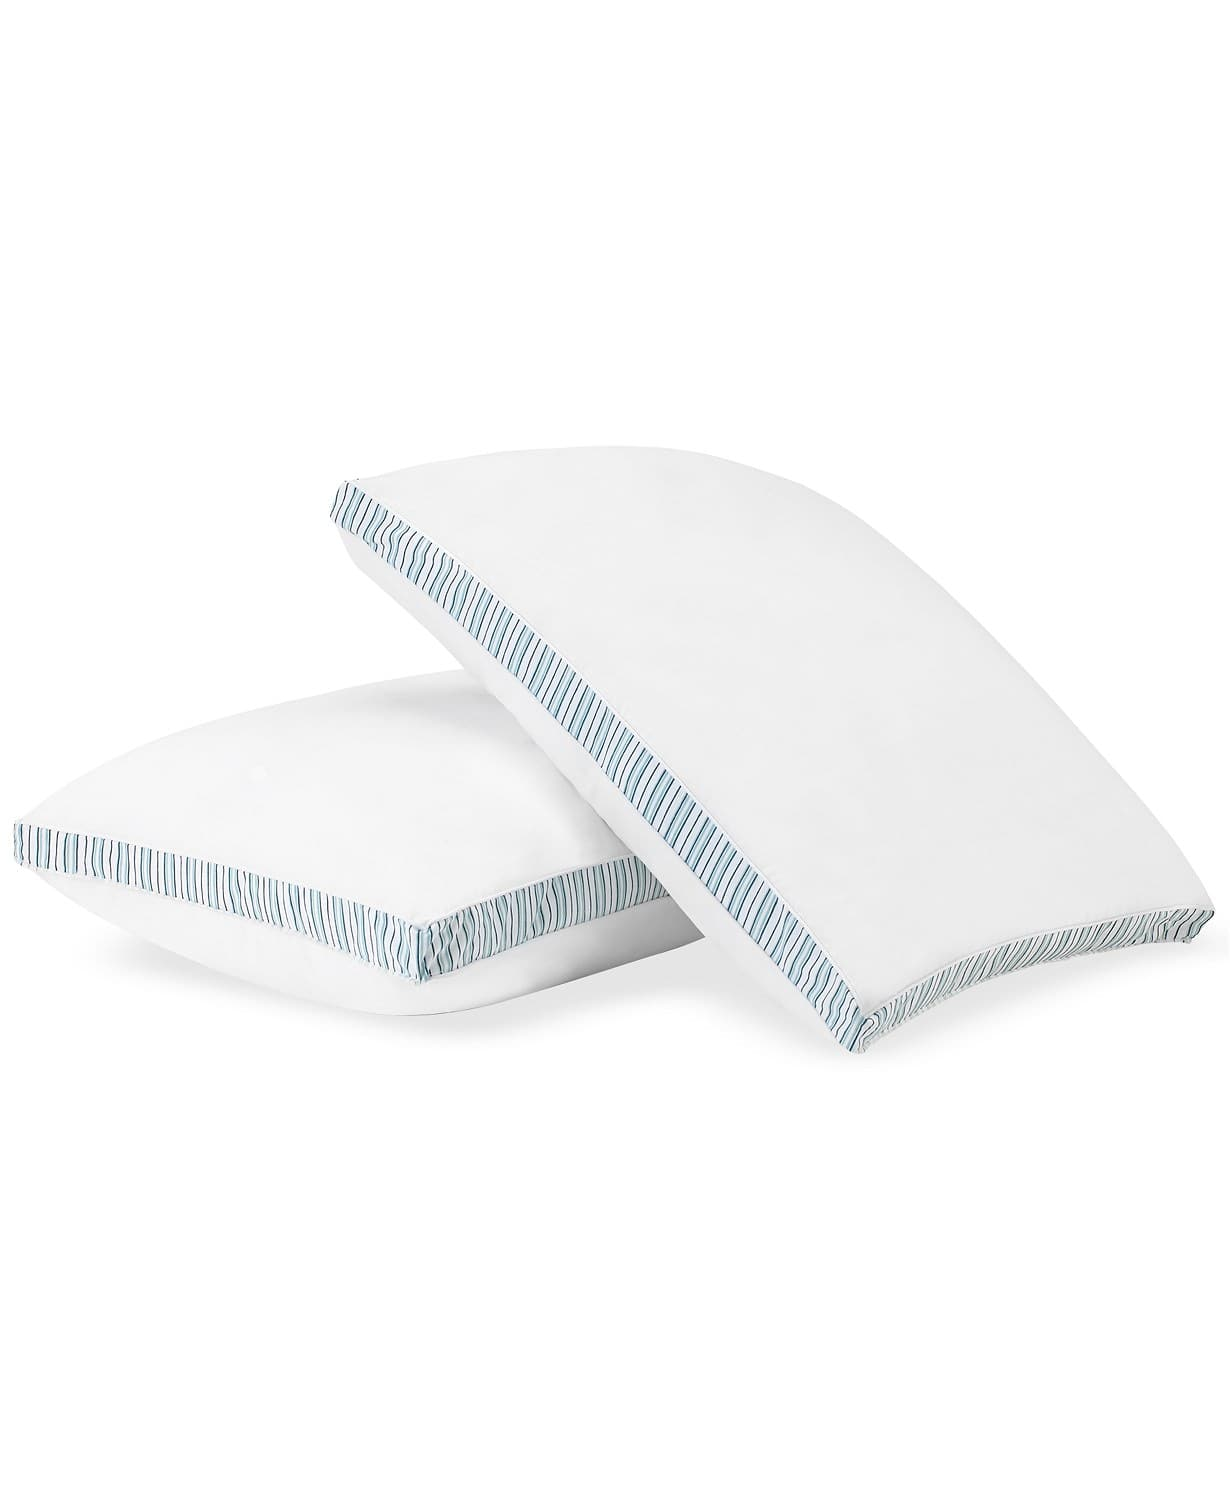 2-Pack Nautica Gusset or Tommy Hilfiger Home Pillows $12 ($6 each) + $3 shipping